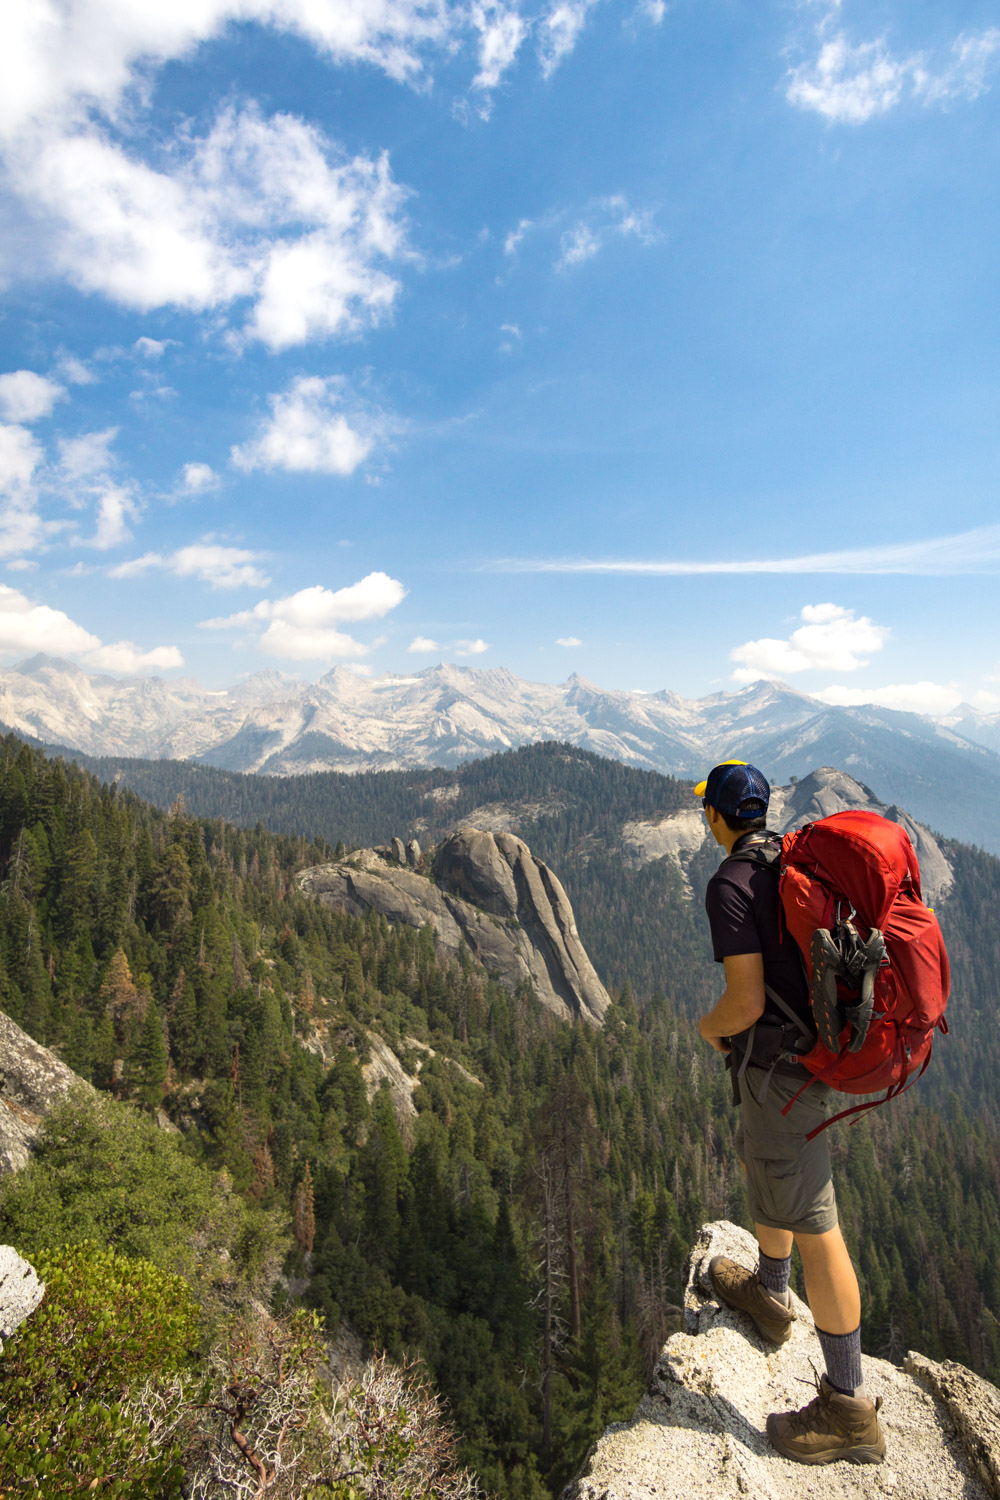 Looking out to the Great Western Divide. Can't believe we'll be hiking over those mountains!